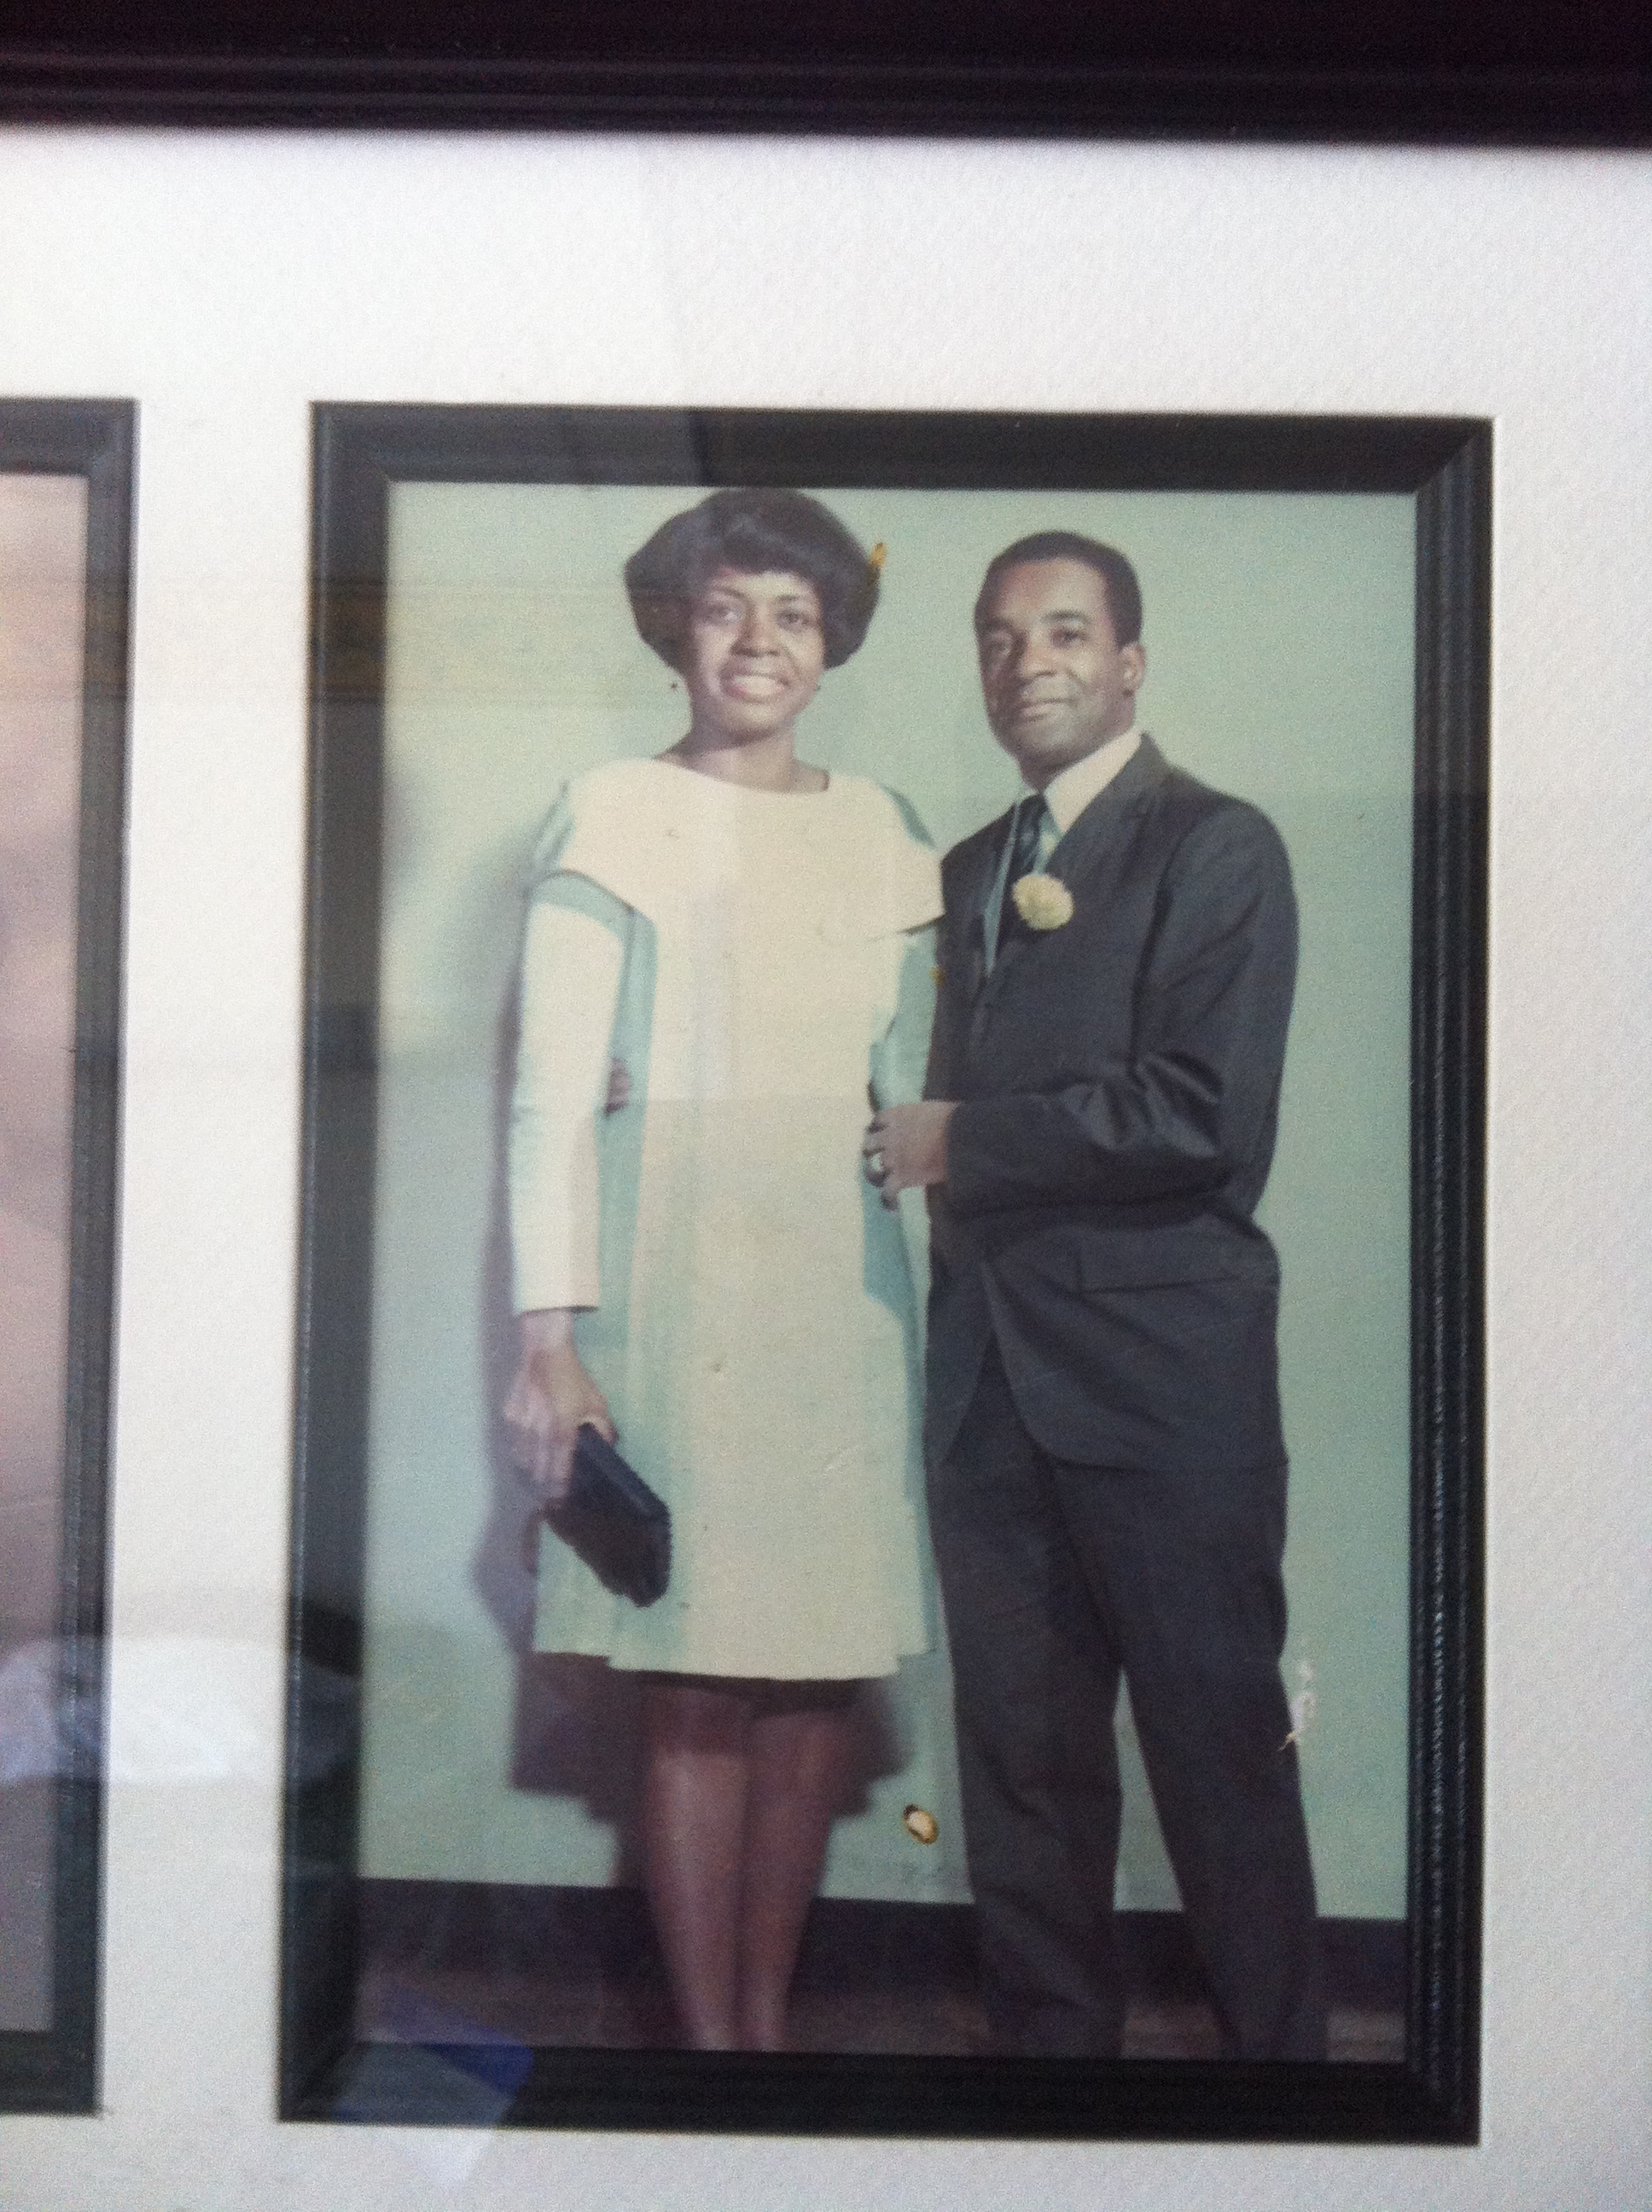 My grandparents back in the day day.